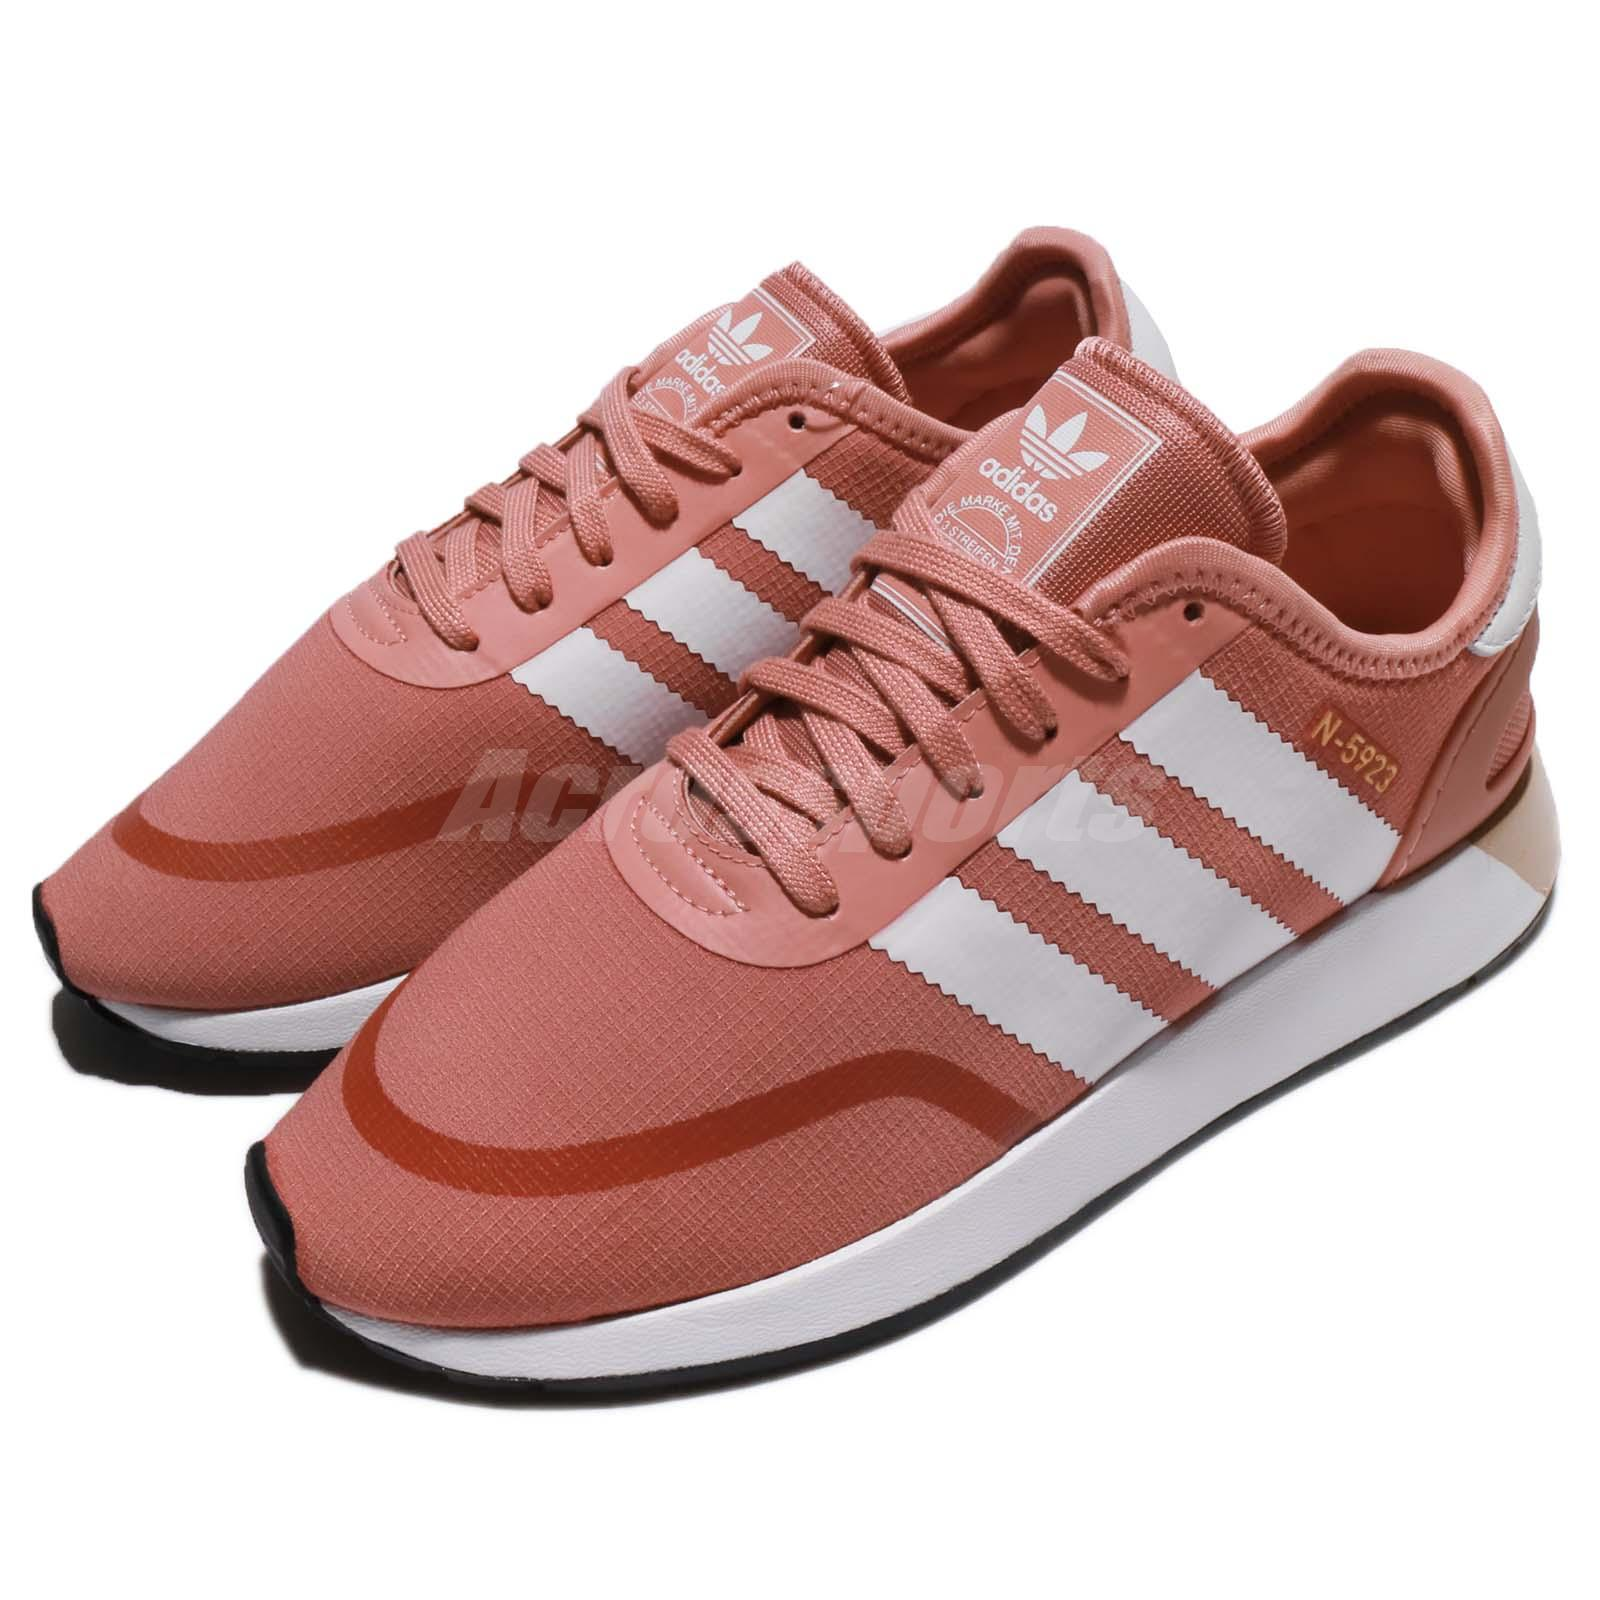 new style 71d08 bb6ae Details about adidas Originals N-5923 W Iniki Runner Ash Pink White Women  Casual Shoes AQ0267